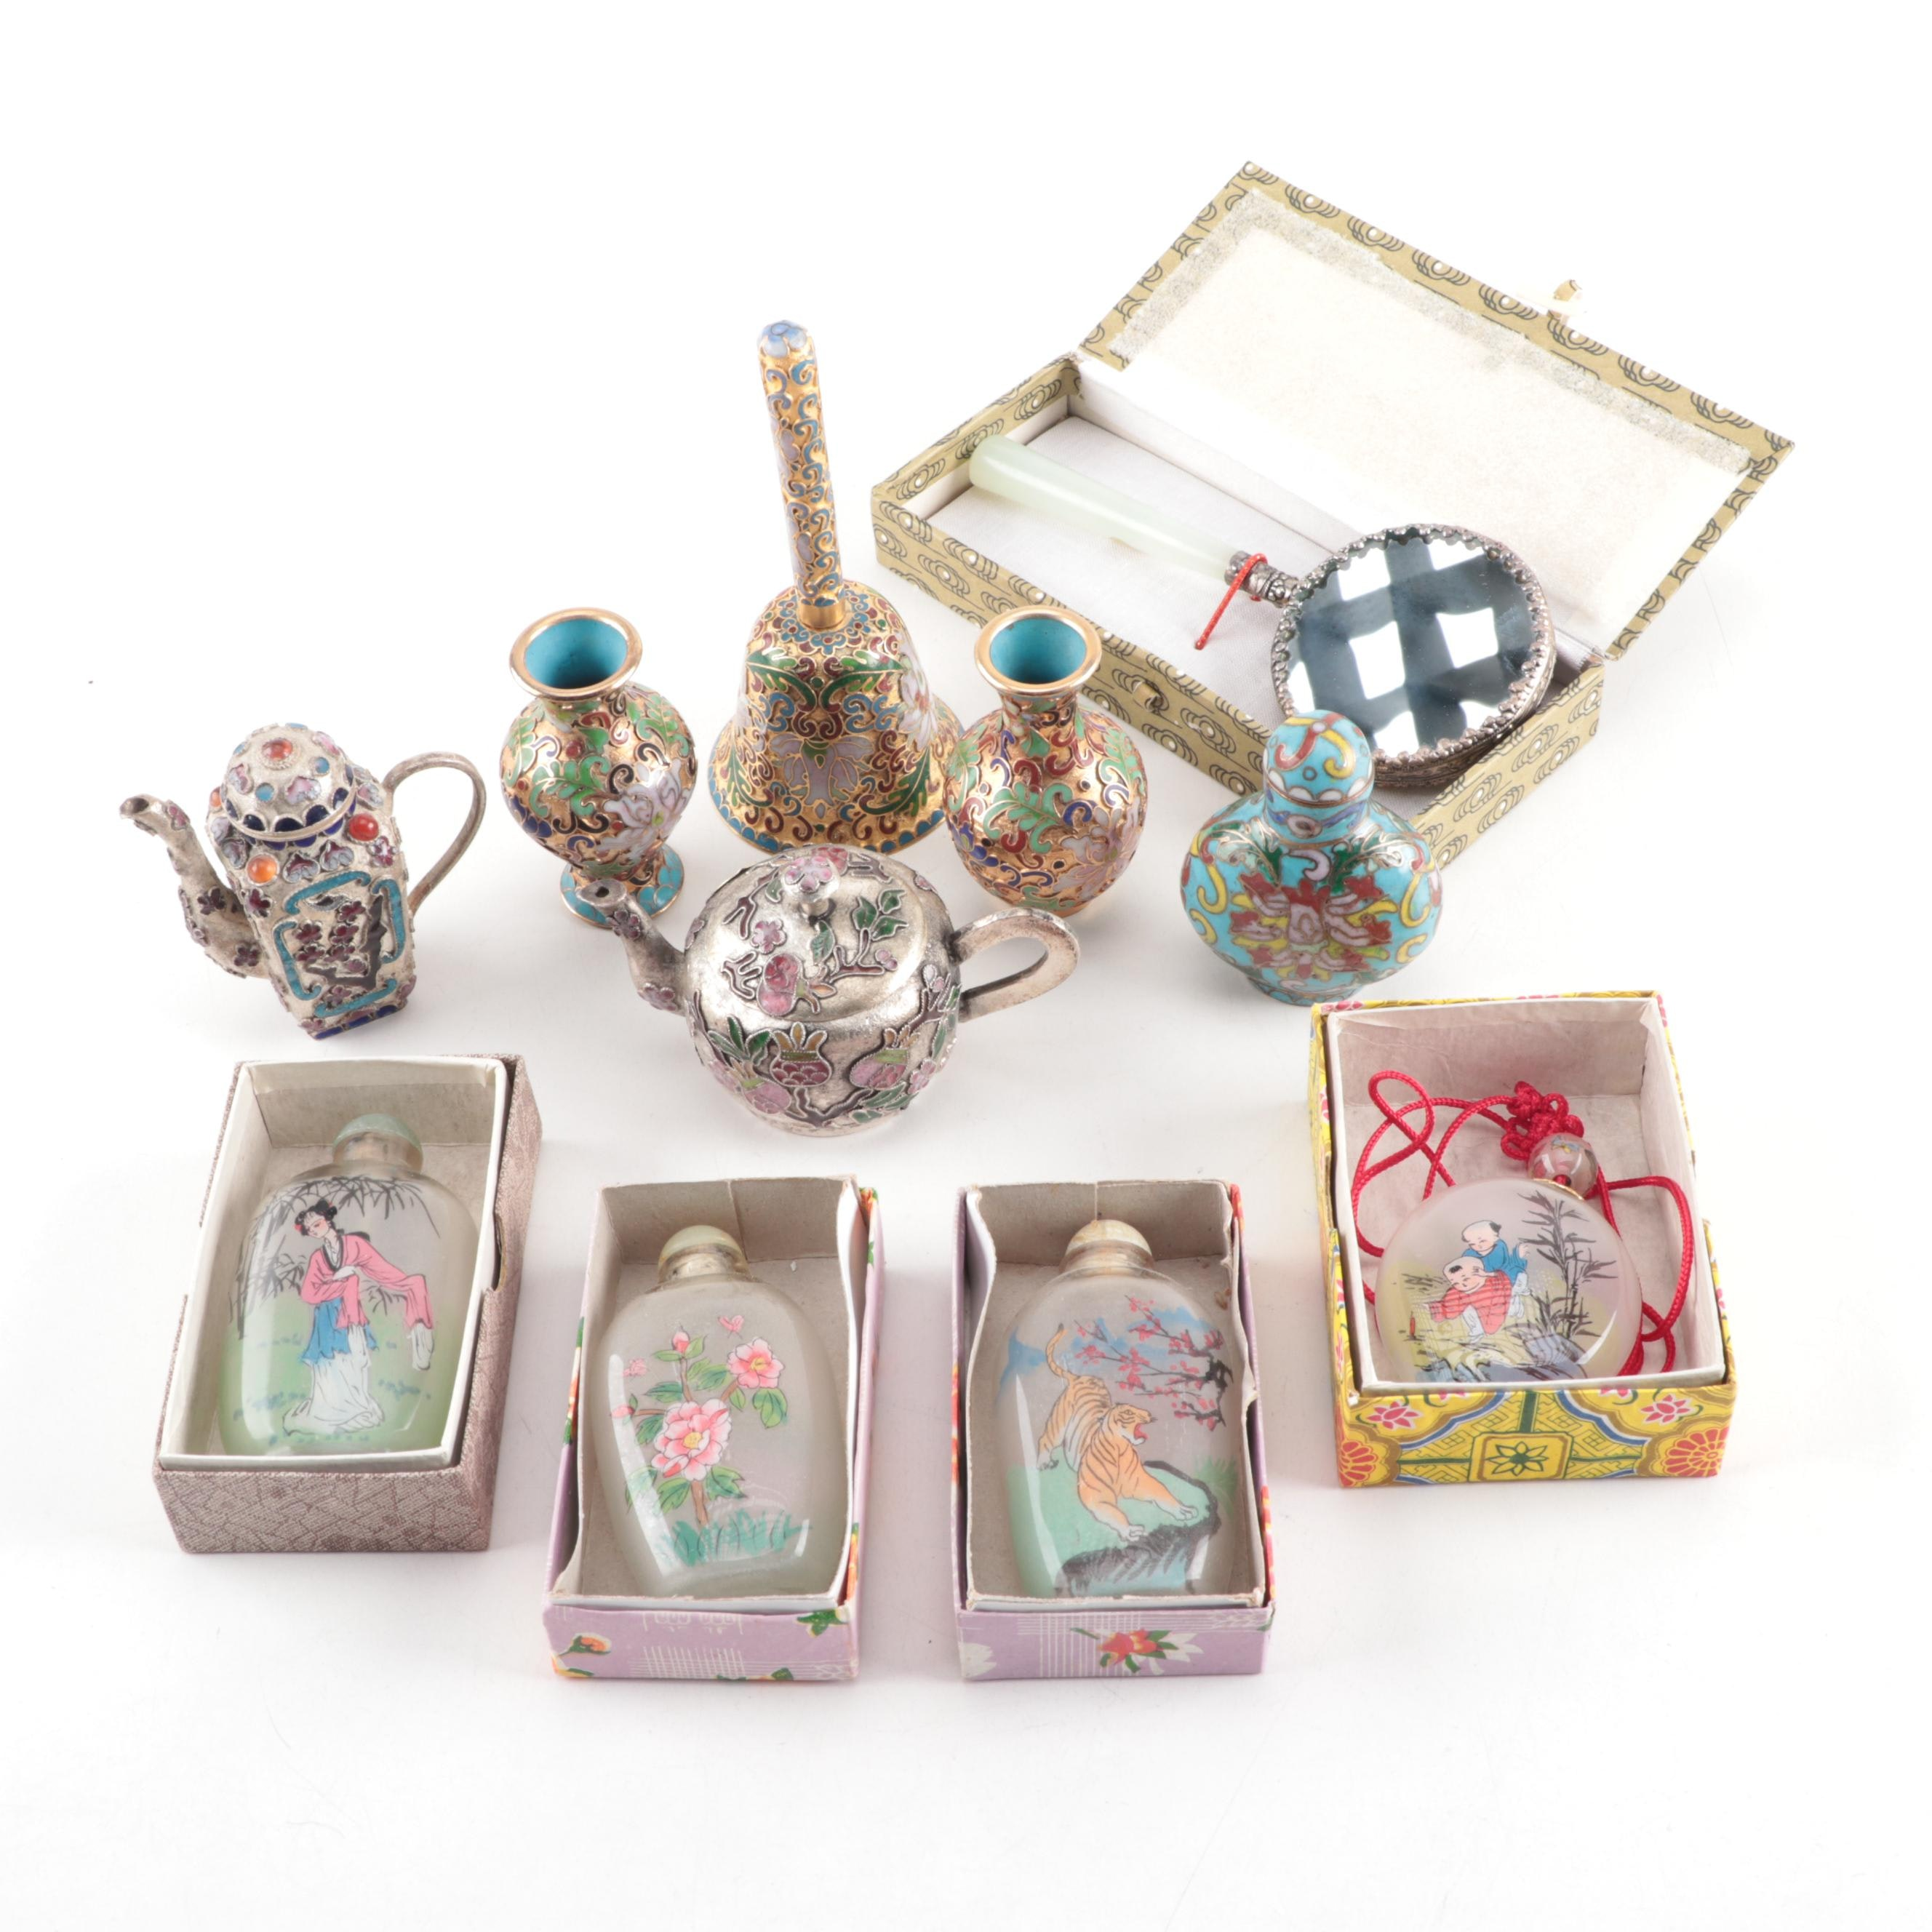 Chinese Snuff Bottles with Cloisonné Miniatures